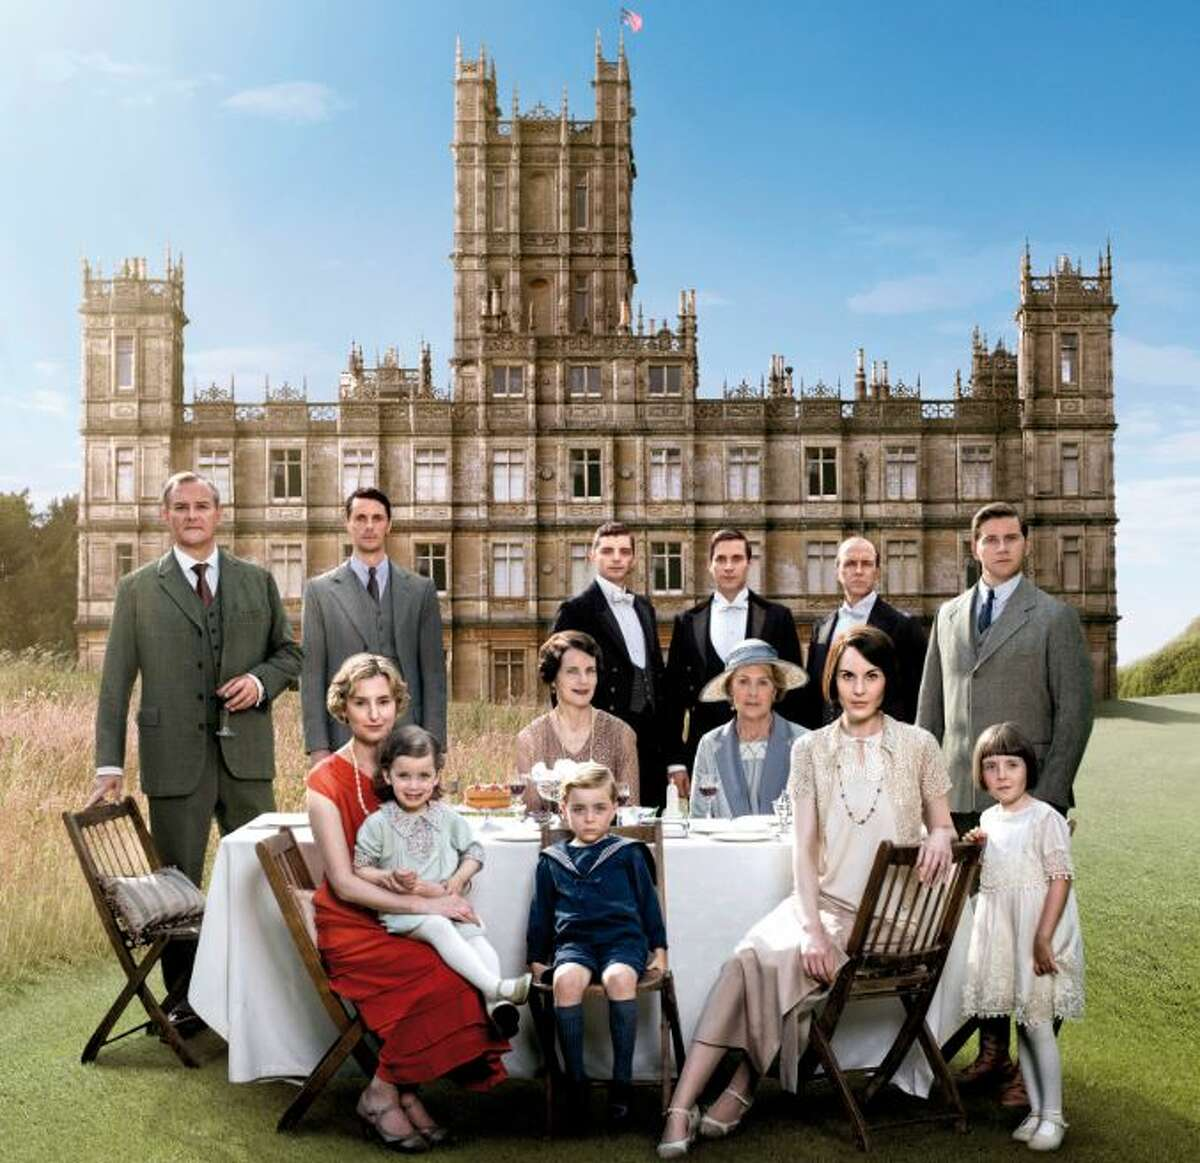 Downton Abbey's finale airs Sunday, March 6.